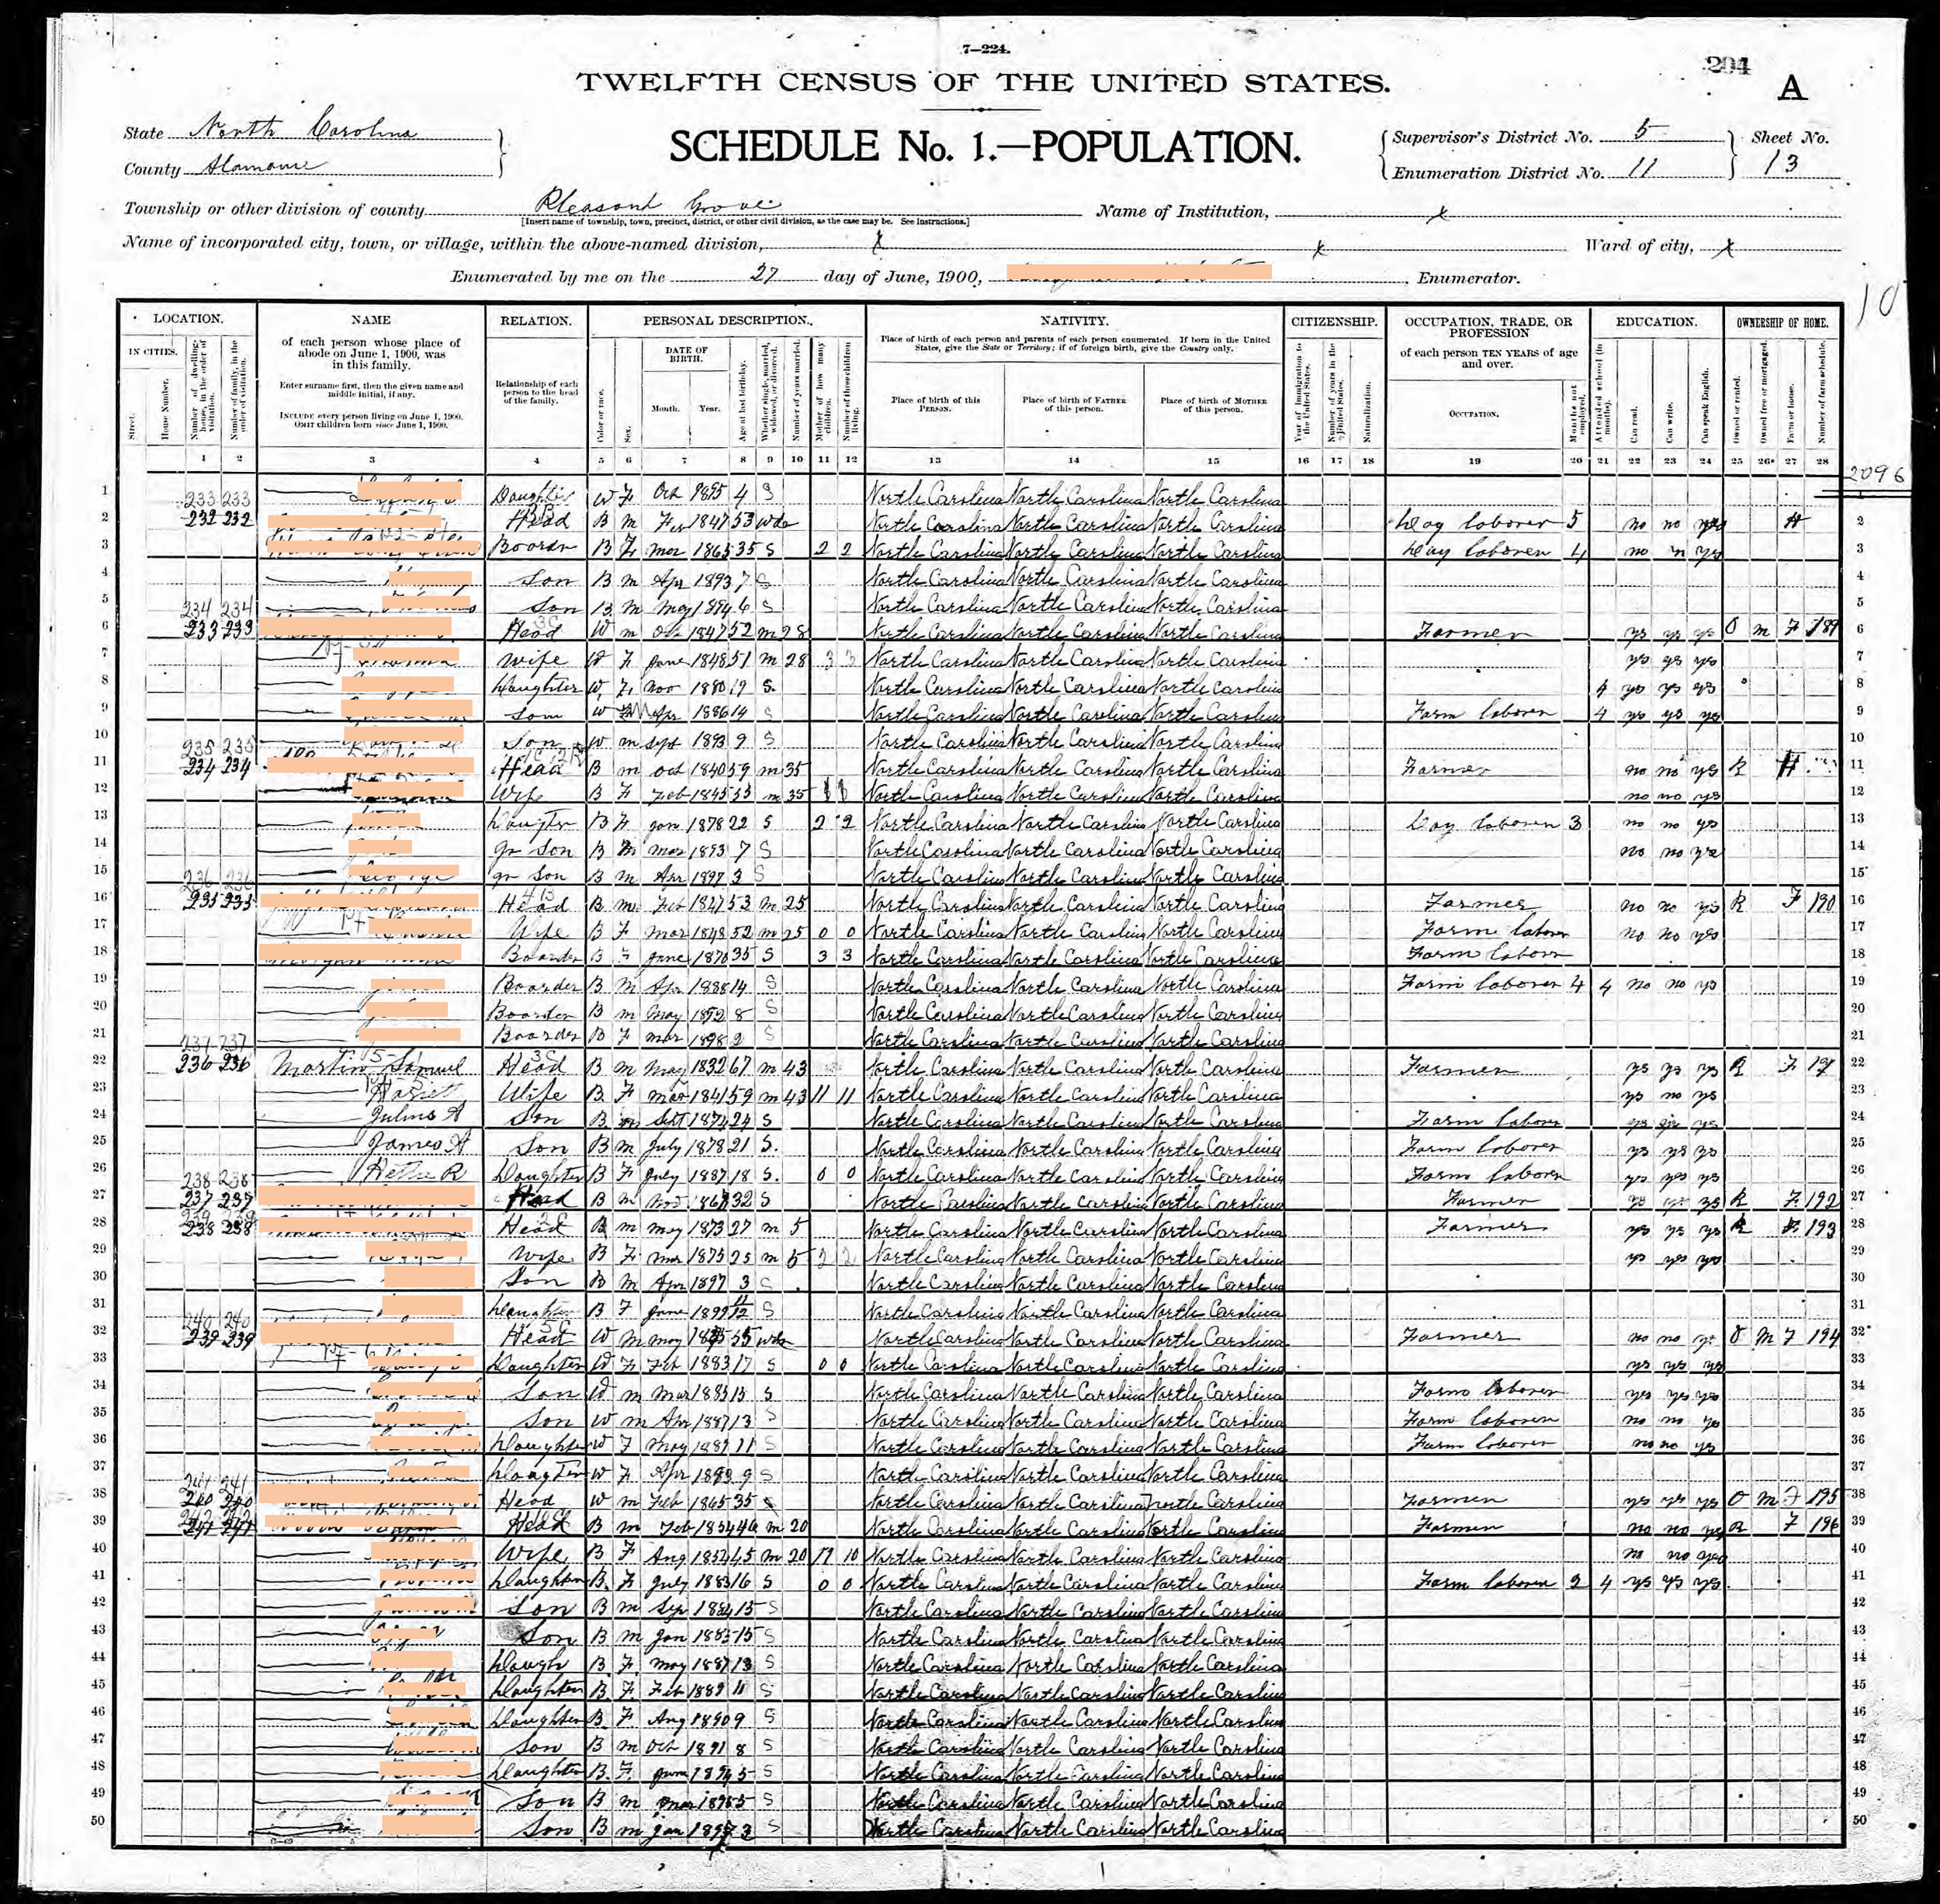 Generation 6:  After 43 years of marriage (1900)    Redacted 1900 census record featuring the family of Samuel F. Martin + Harriet Jeffries (4x great grandparents), html hex color codes sourced from photographs of my mother. Digital print, 24 x 24 in